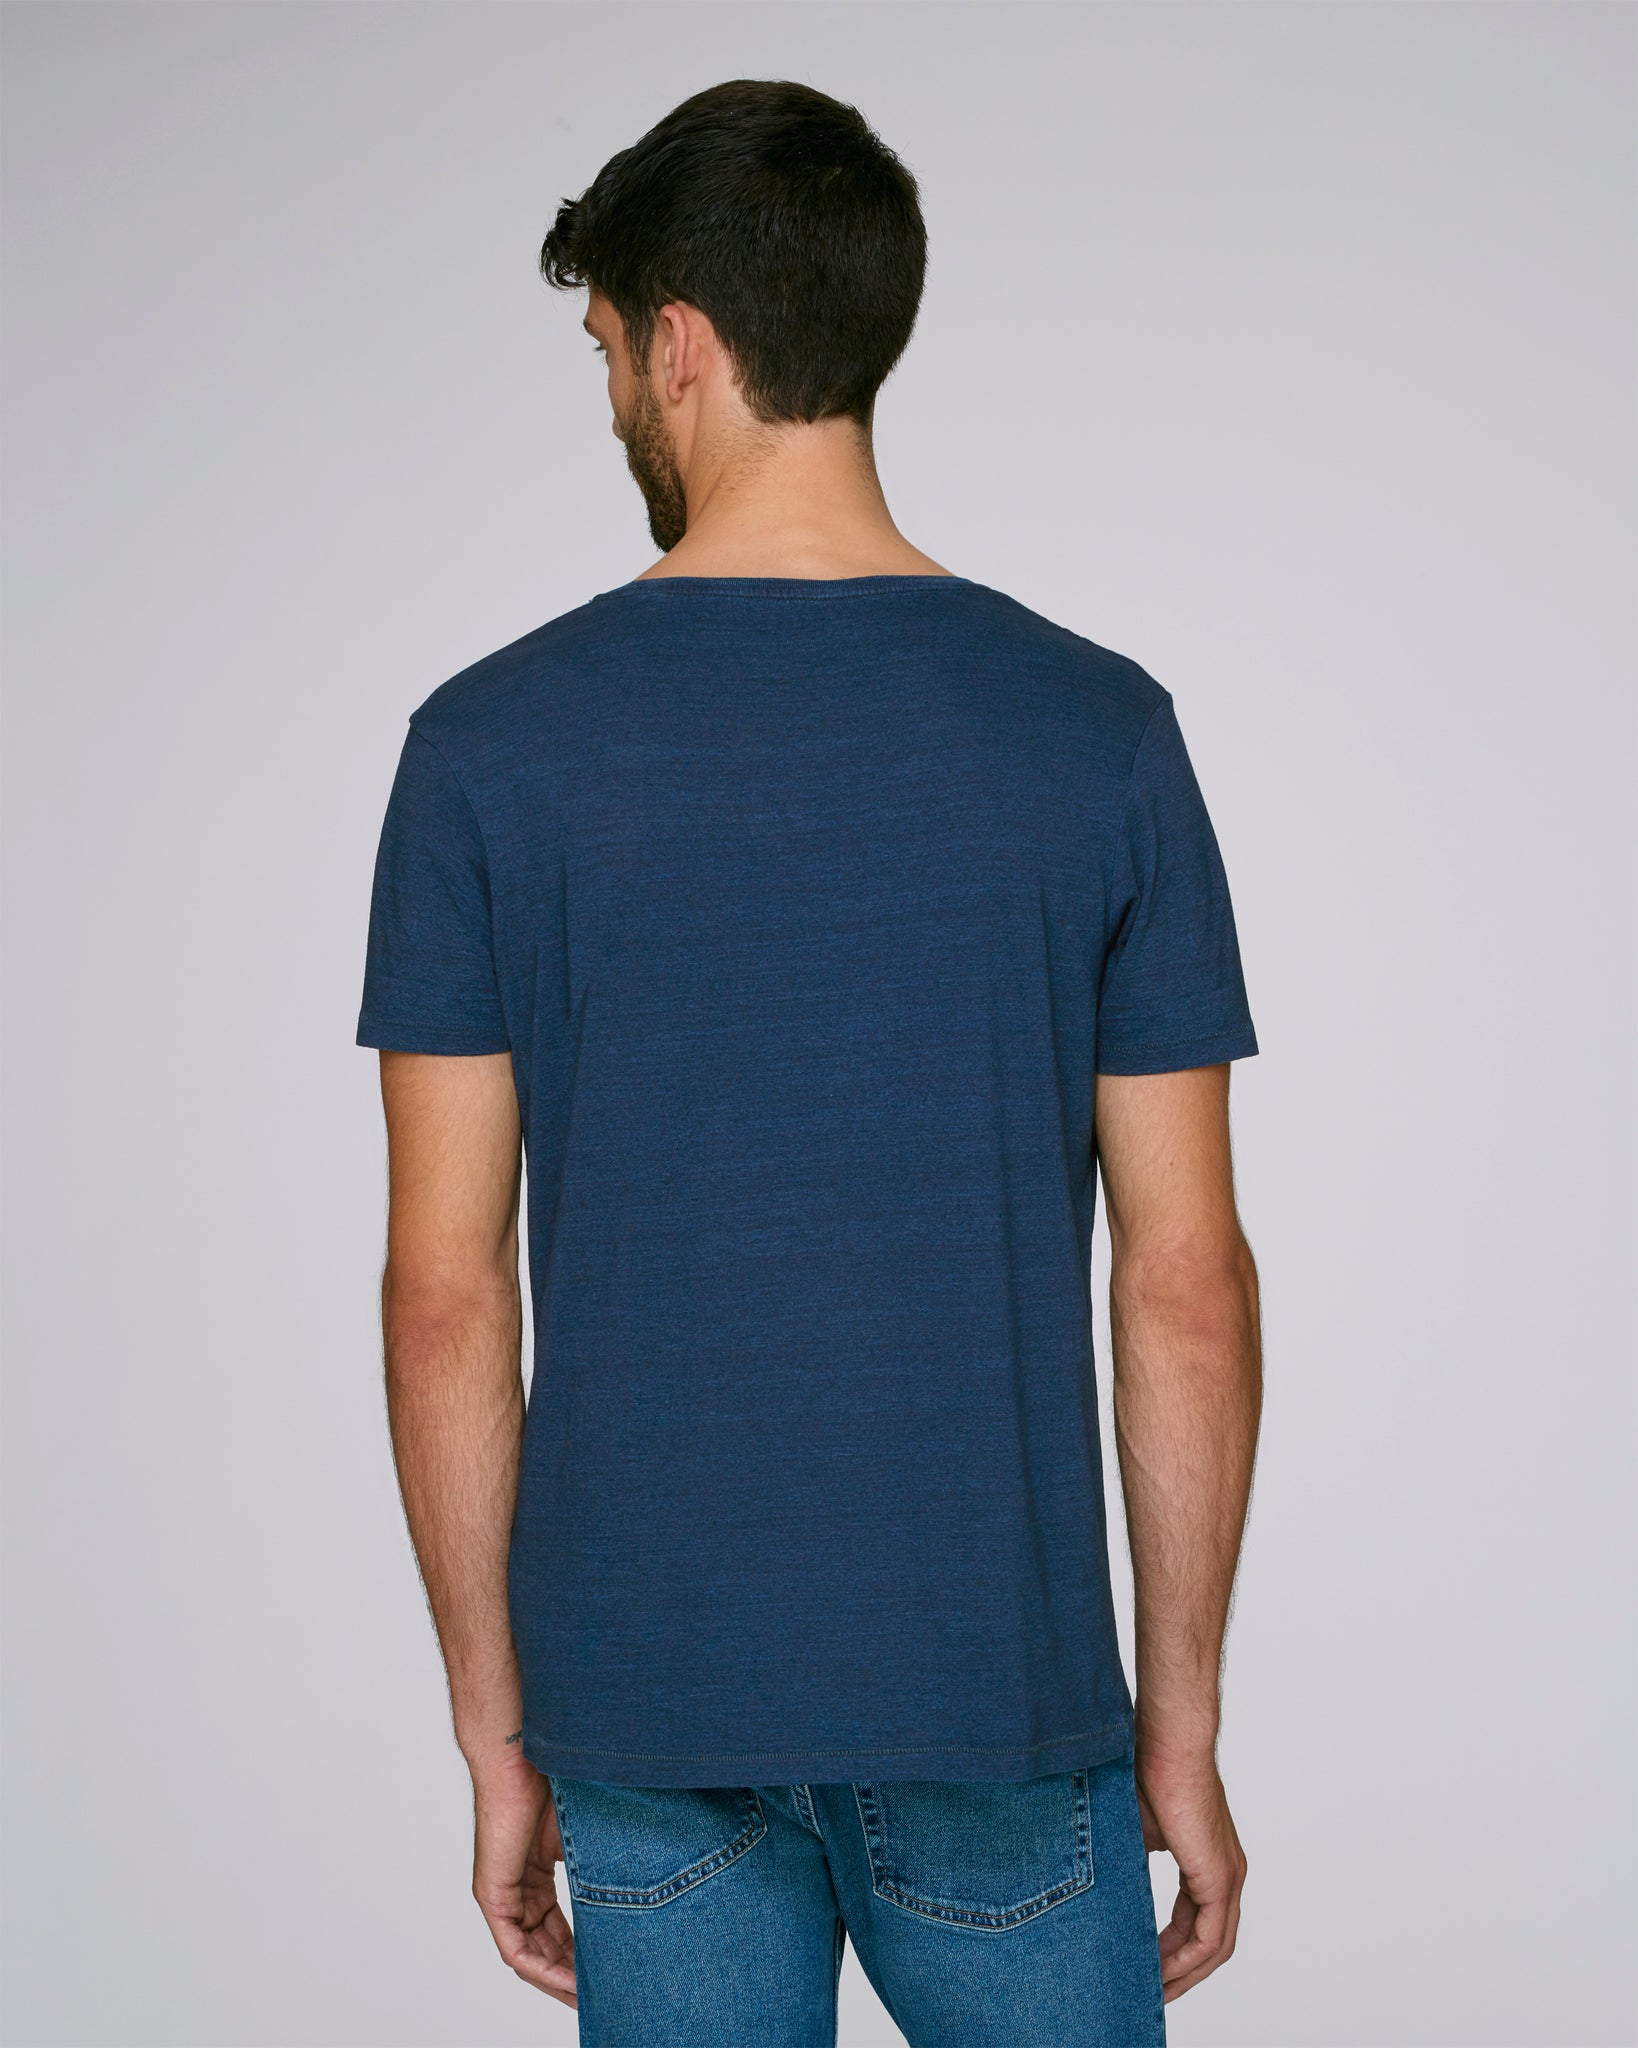 SECRET DENIM T-SHIRT